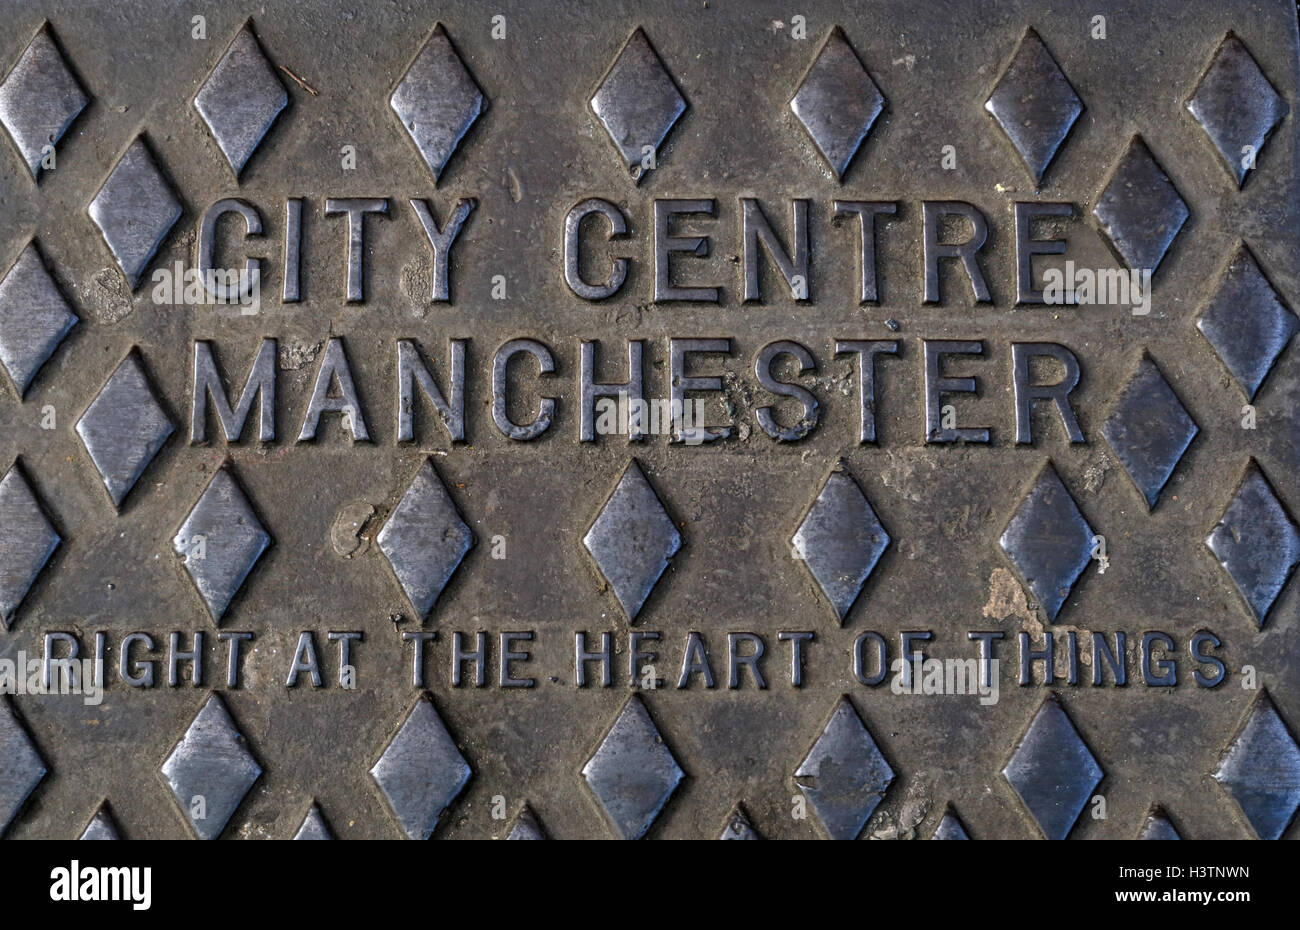 Gay,Village,Manhole,Man,hole,iron,steel,metal,icon,logo,things,Northern,Powerhouse,diamond,pattern,Canal,Street,st,LGBT,Manchester Sewer,Manchester Grid,Right at the heart of things,Northern Powerhouse,City Centre Manchester,Manchester City,Canal St,GoTonySmith,@HotpixUK,Tony,Smith,UK,GB,Great,Britain,United,Kingdom,English,British,England,man,hole,cast,iron,access,iron,cast iron,metal,steel,@HotpixUK,road,street,grid,in,road,street,Water works,access,access cover,sewer,manhole,Buy Pictures of,Buy Images Of,Images of,Stock Images,Tony Smith,United Kingdom,Great Britain,British Isles